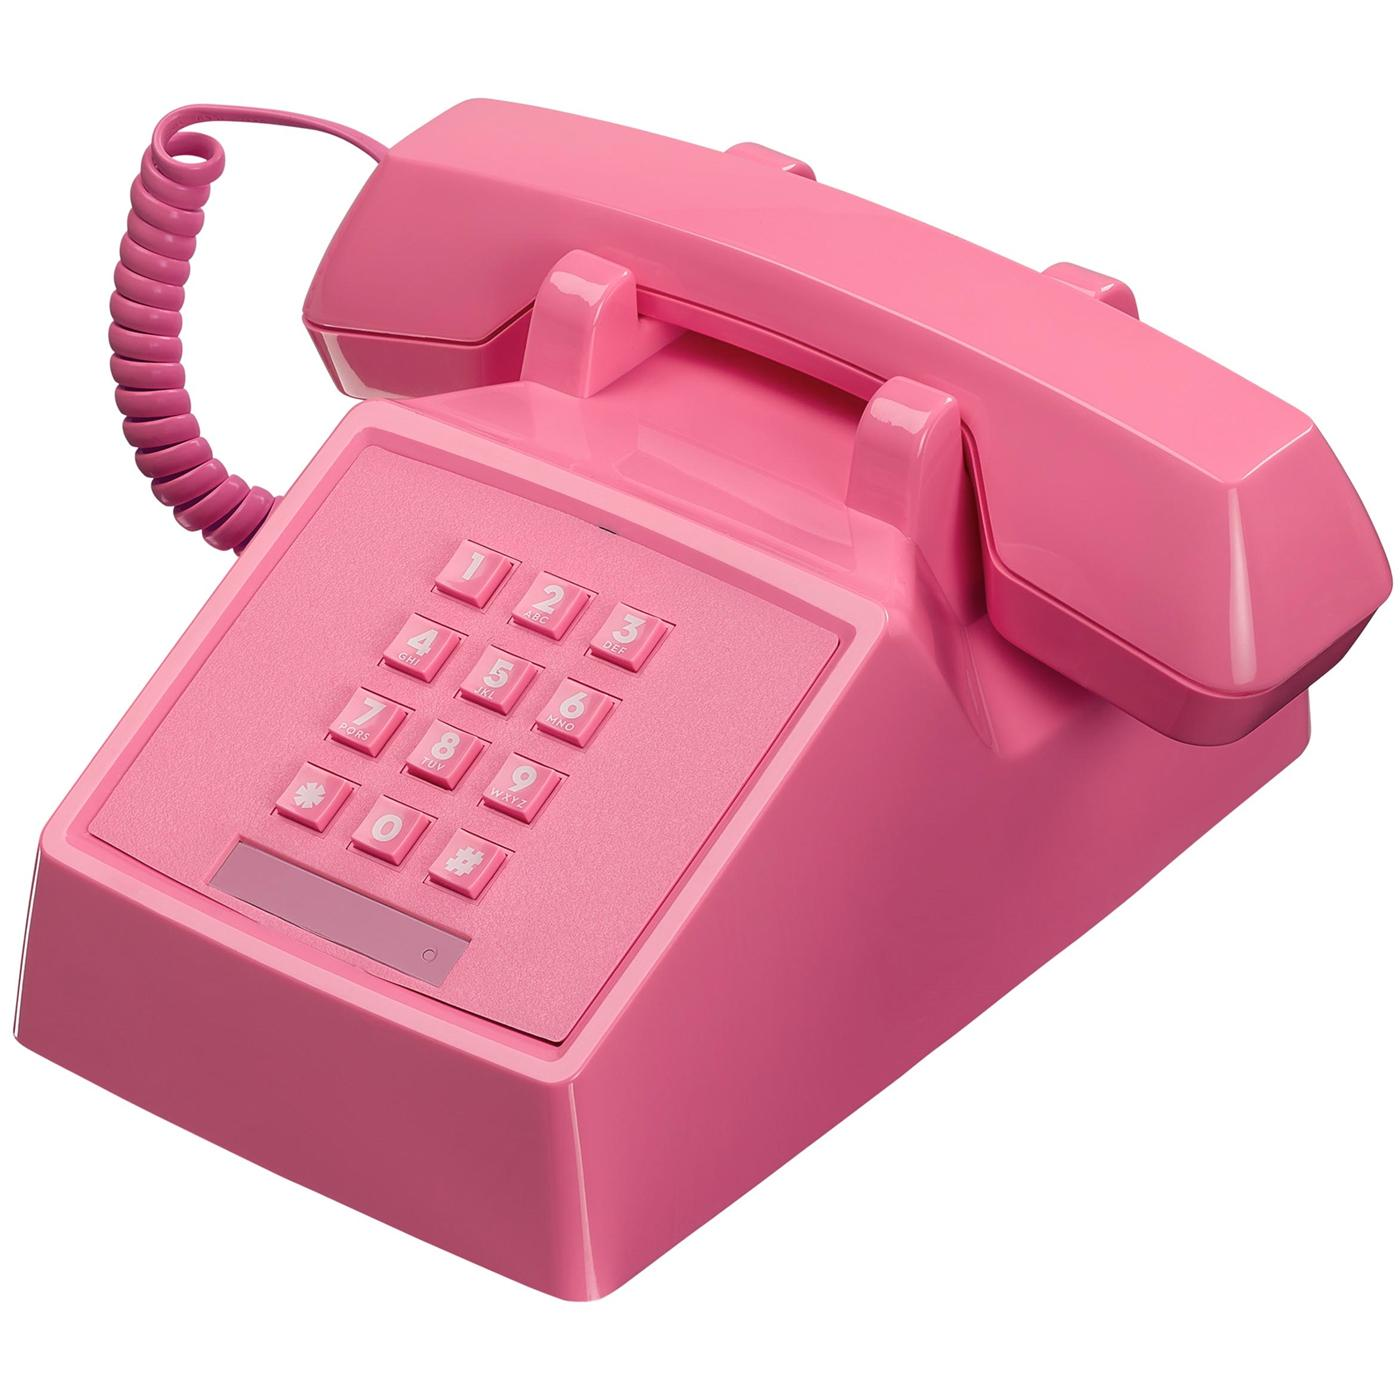 2500 Phone Retro 80s Vintage Telephone in Flamingo